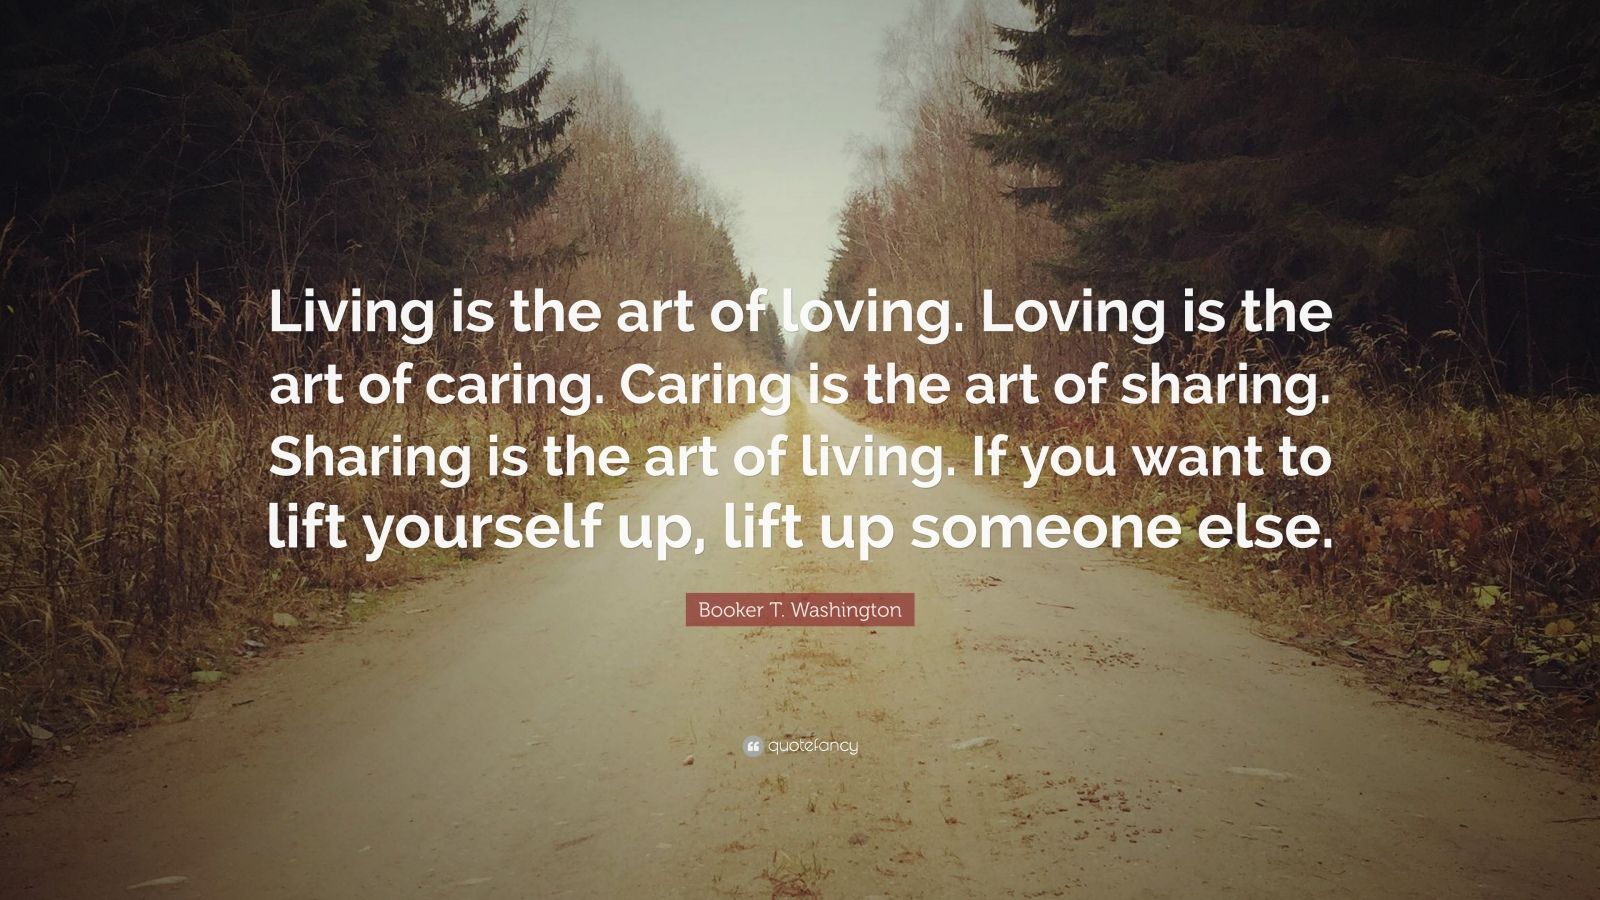 "Booker T. Washington Quote: ""Living is the art of loving. Loving is the art of caring. Caring is the art of sharing. Sharing is the art of living. If you want to lift yourself up, lift up someone else."""